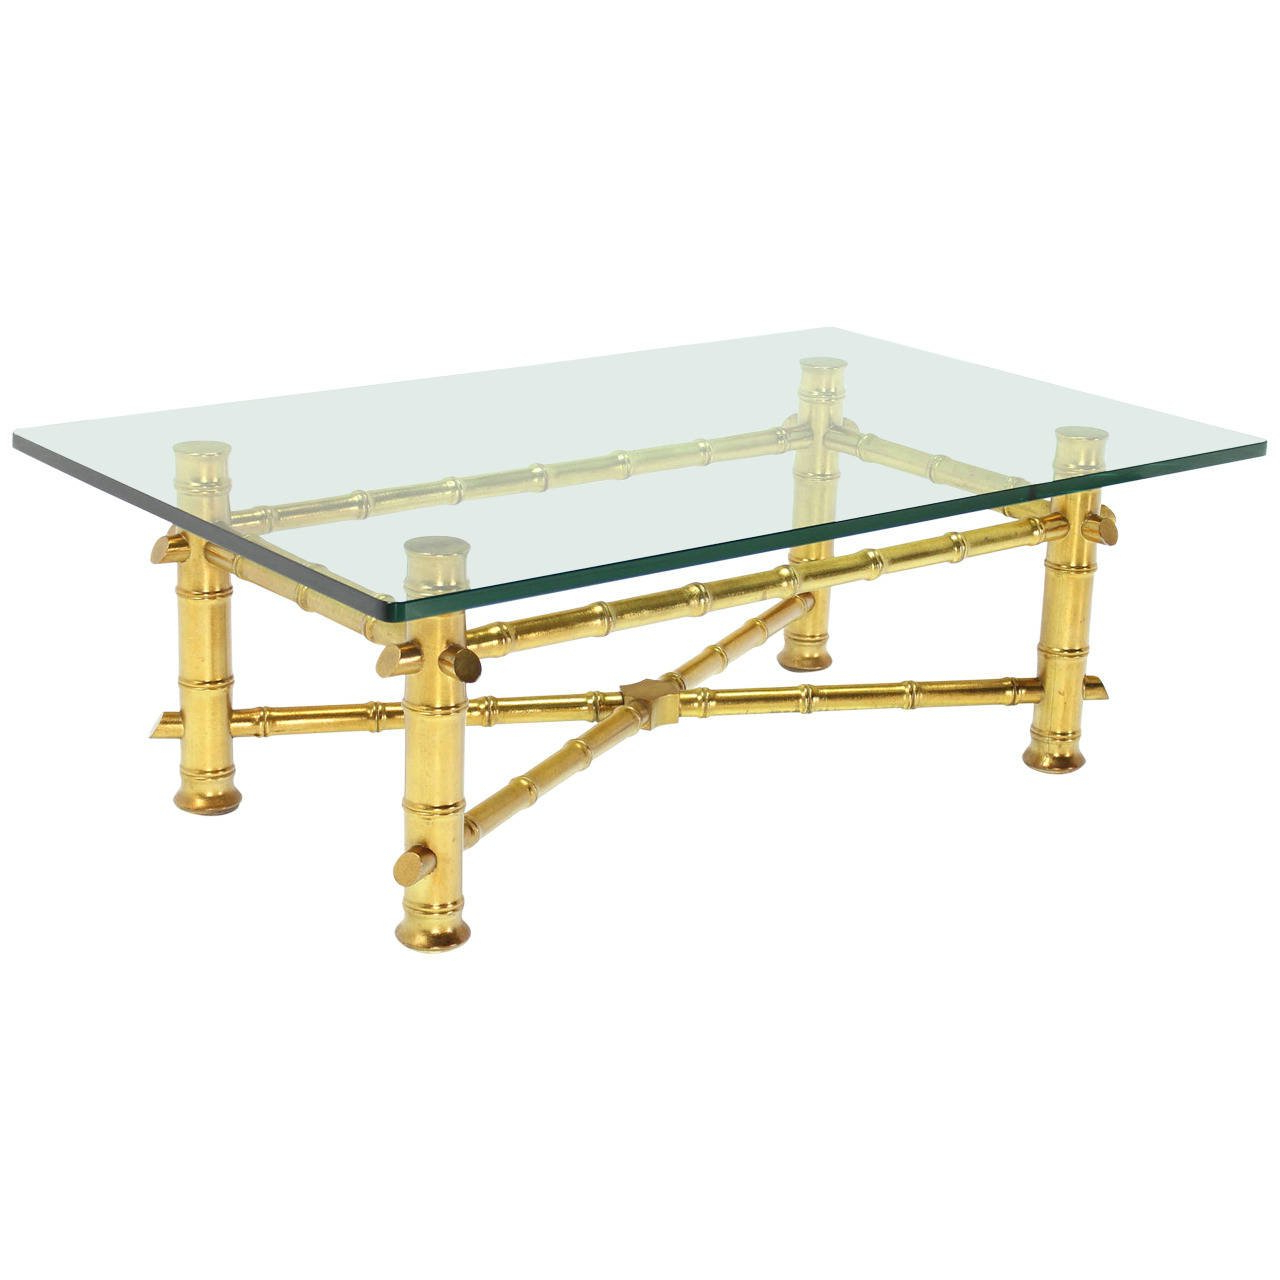 Well Known Gold Leaf Faux Bamboo Base Coffee Table With Thick Glass Top For Pertaining To Gold Leaf Collection Coffee Tables (Gallery 19 of 20)